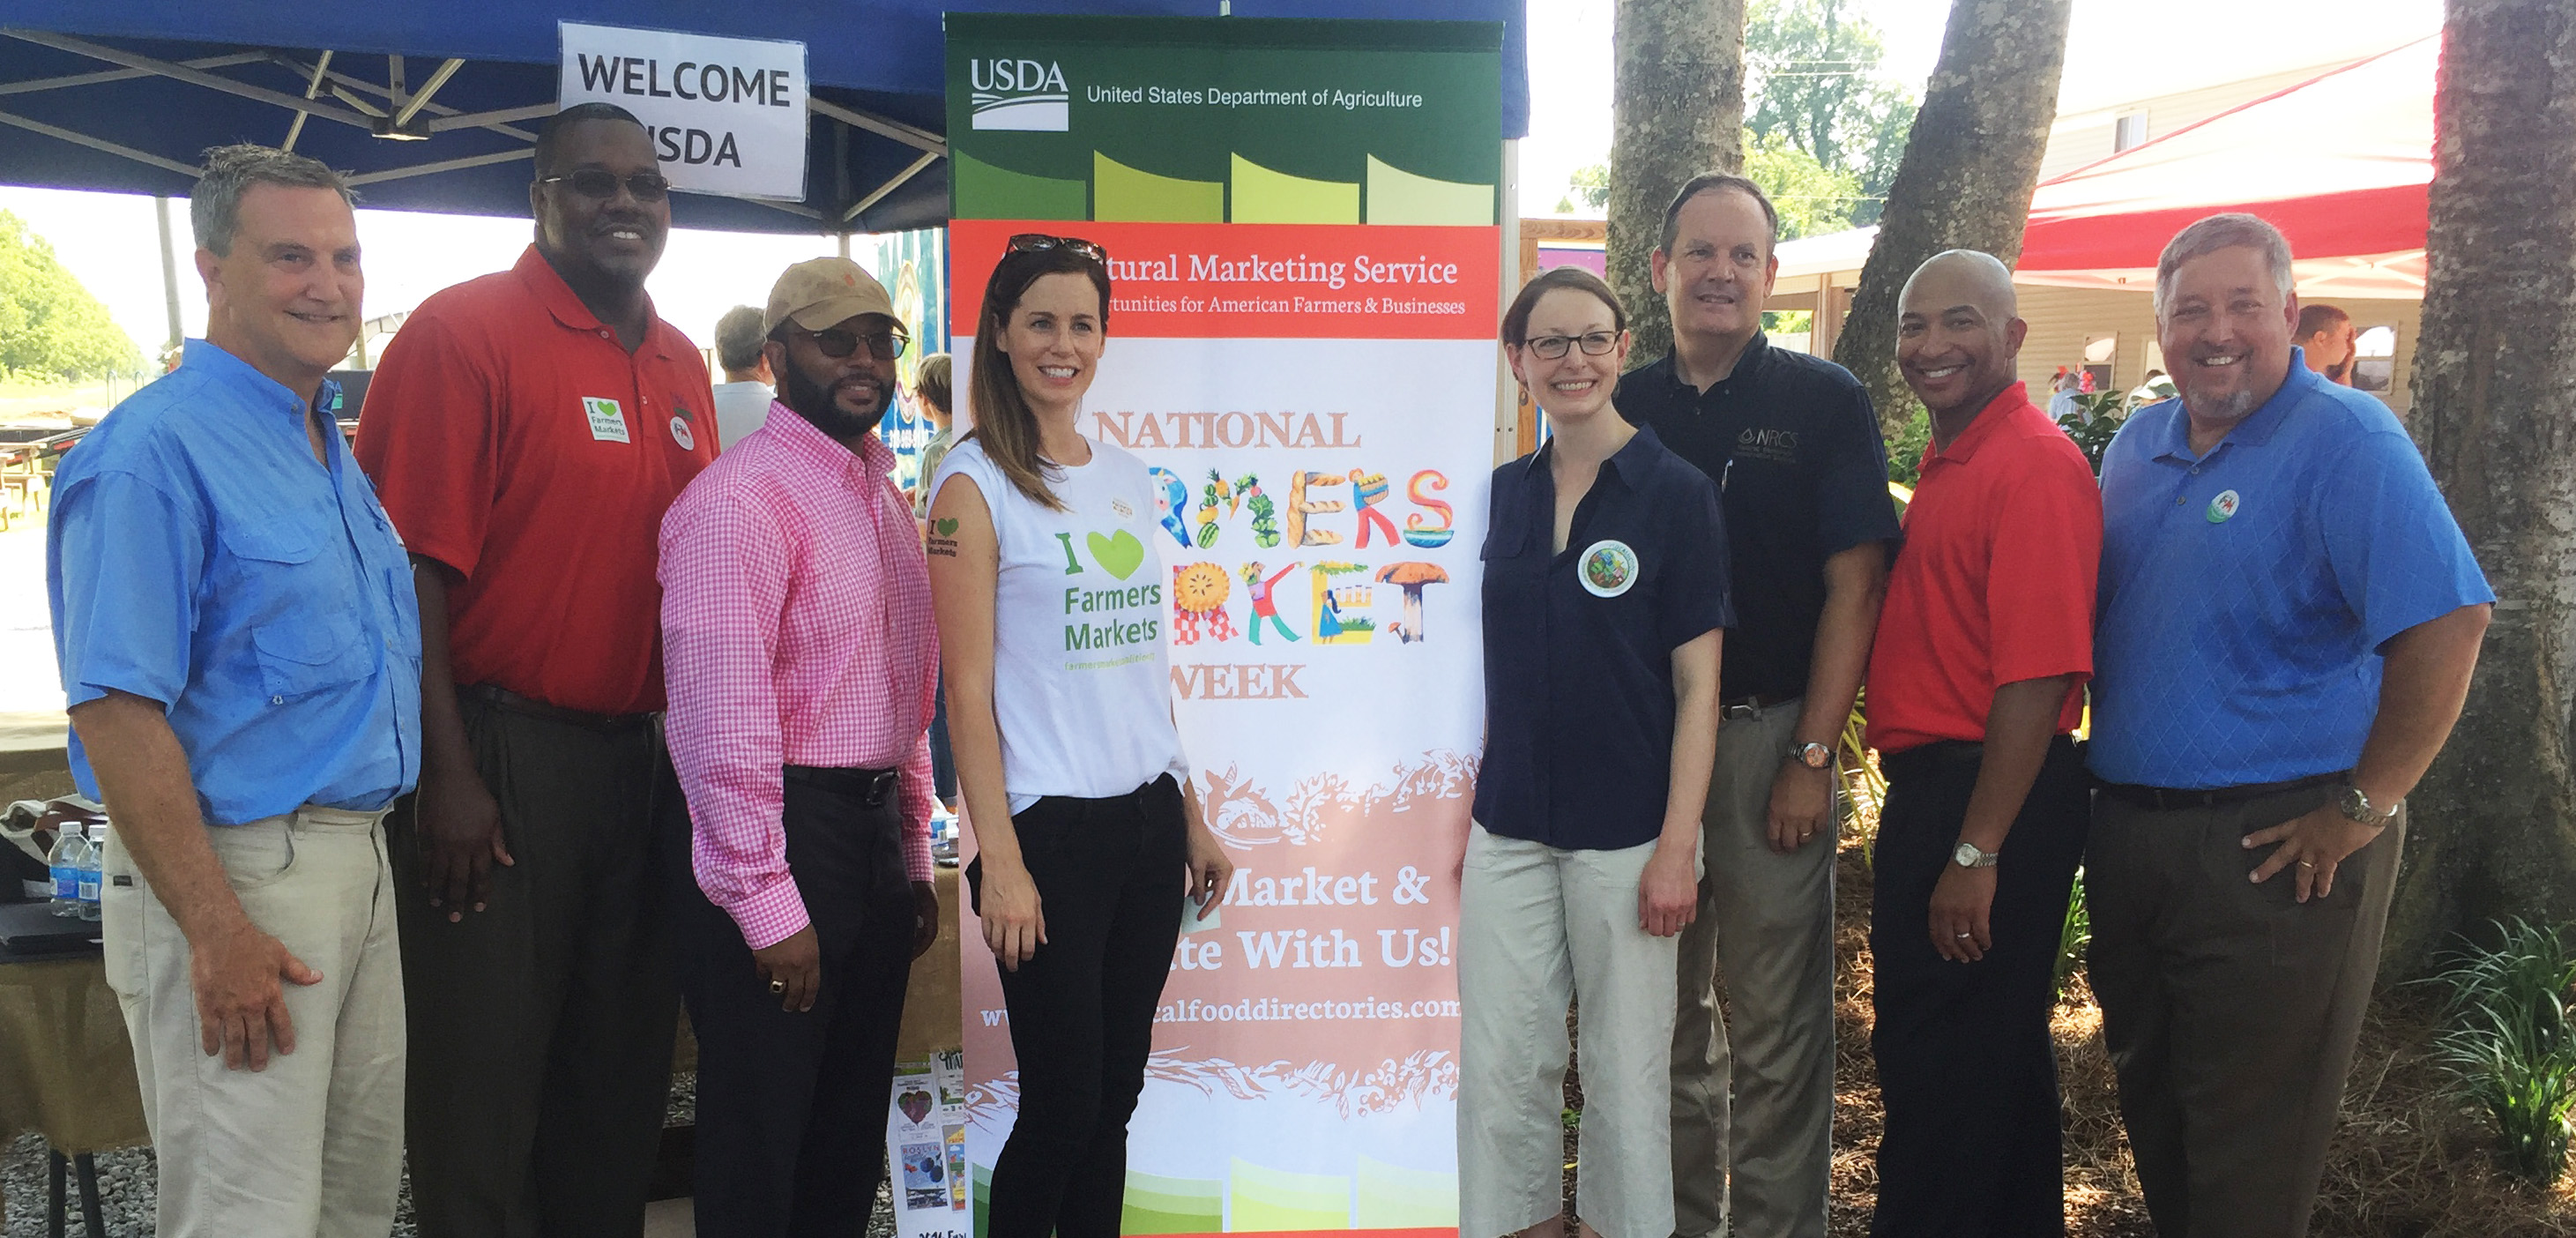 Inglewood Market Manager Lee Weeks, Lee Jones of USDA Rural Development, Arthur Neal of USDA AMS, Jen Cheek of FMC, Elanor Starmer of USDA AMS, Kevin Norton of USDA NRCS, Michael Johnson of USDA AMS, and Craig McCain of USDA Farm Service Agency at the Inglewood Harvest Barn Markt